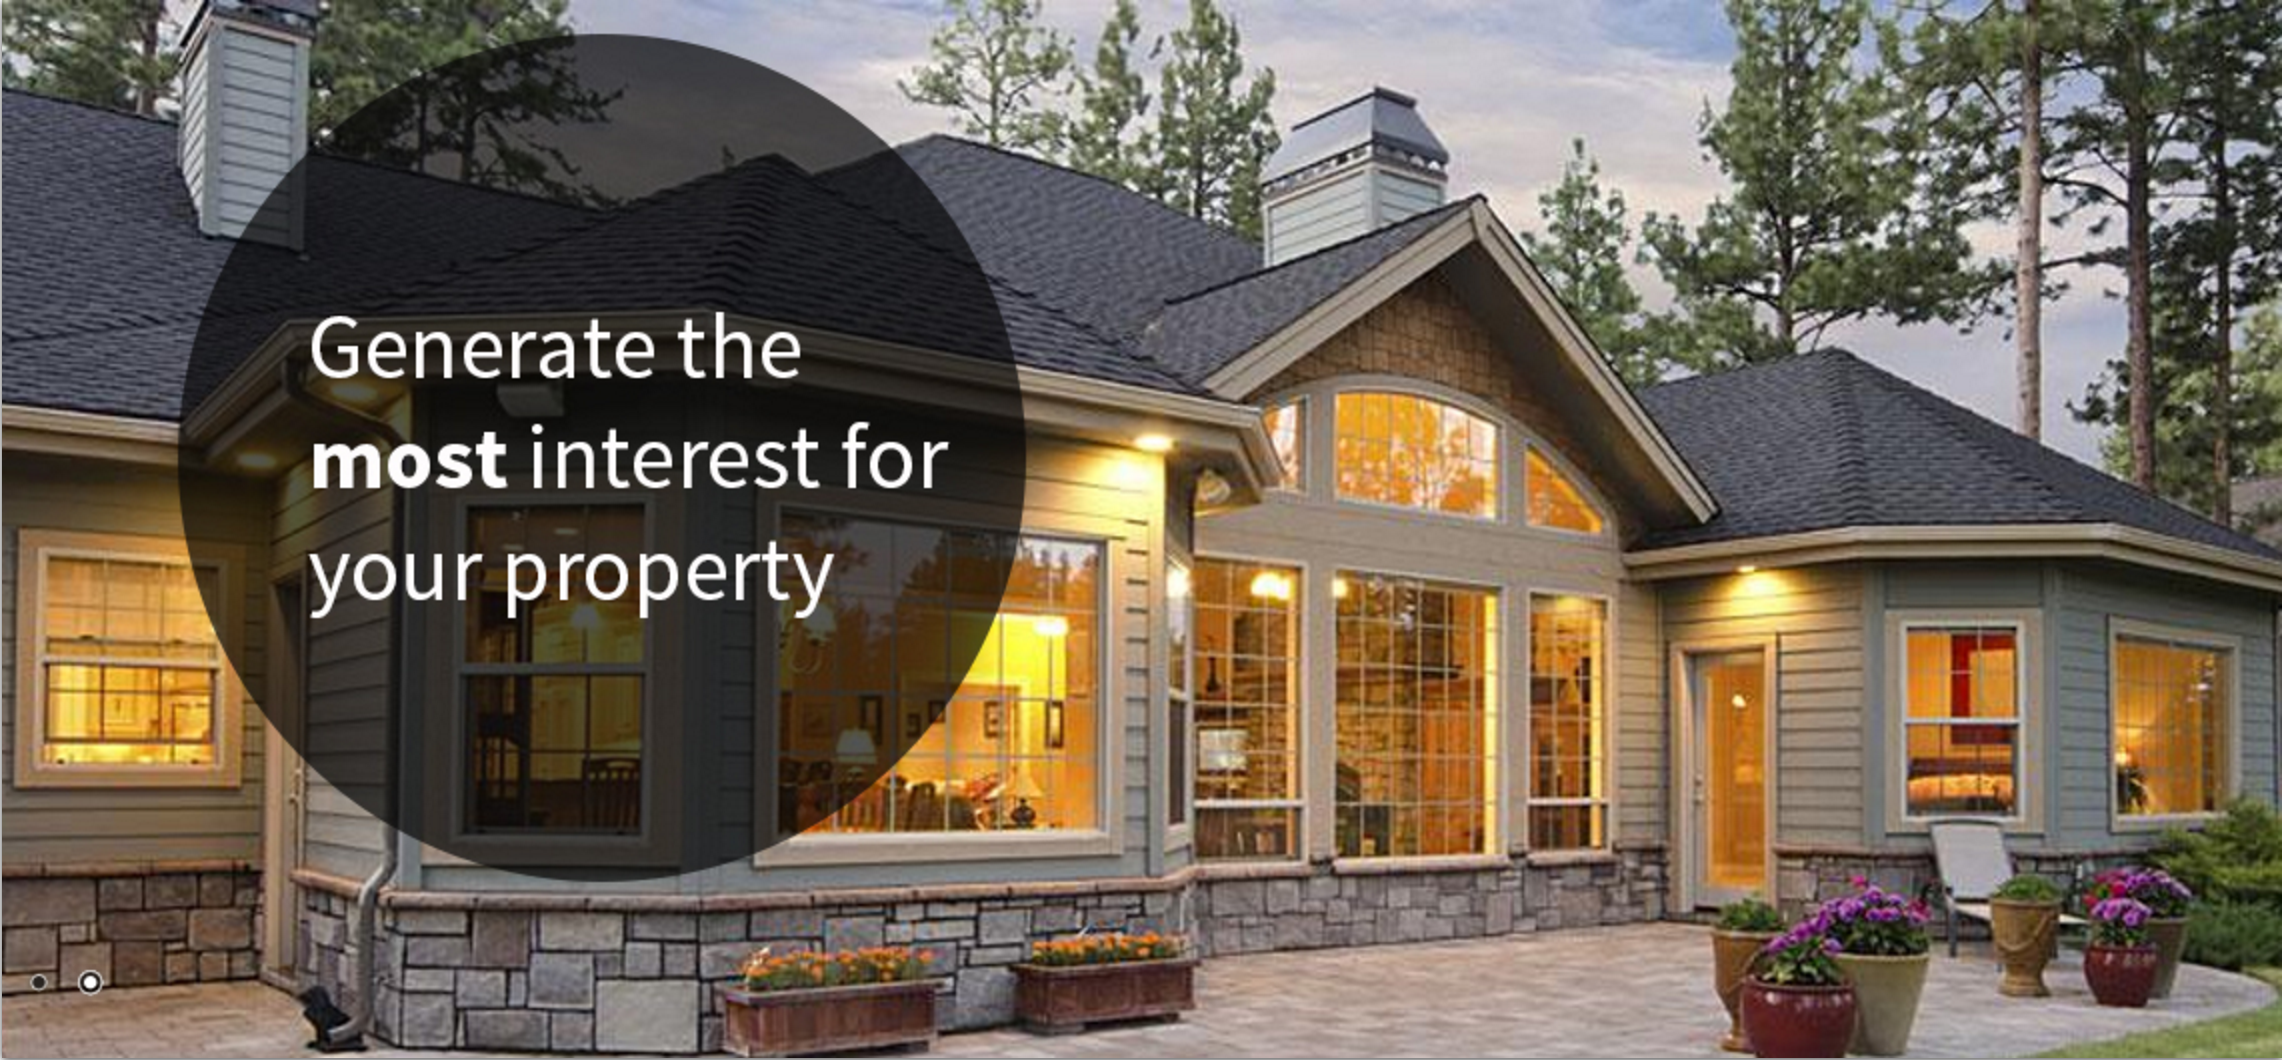 Generate the most interest for your property